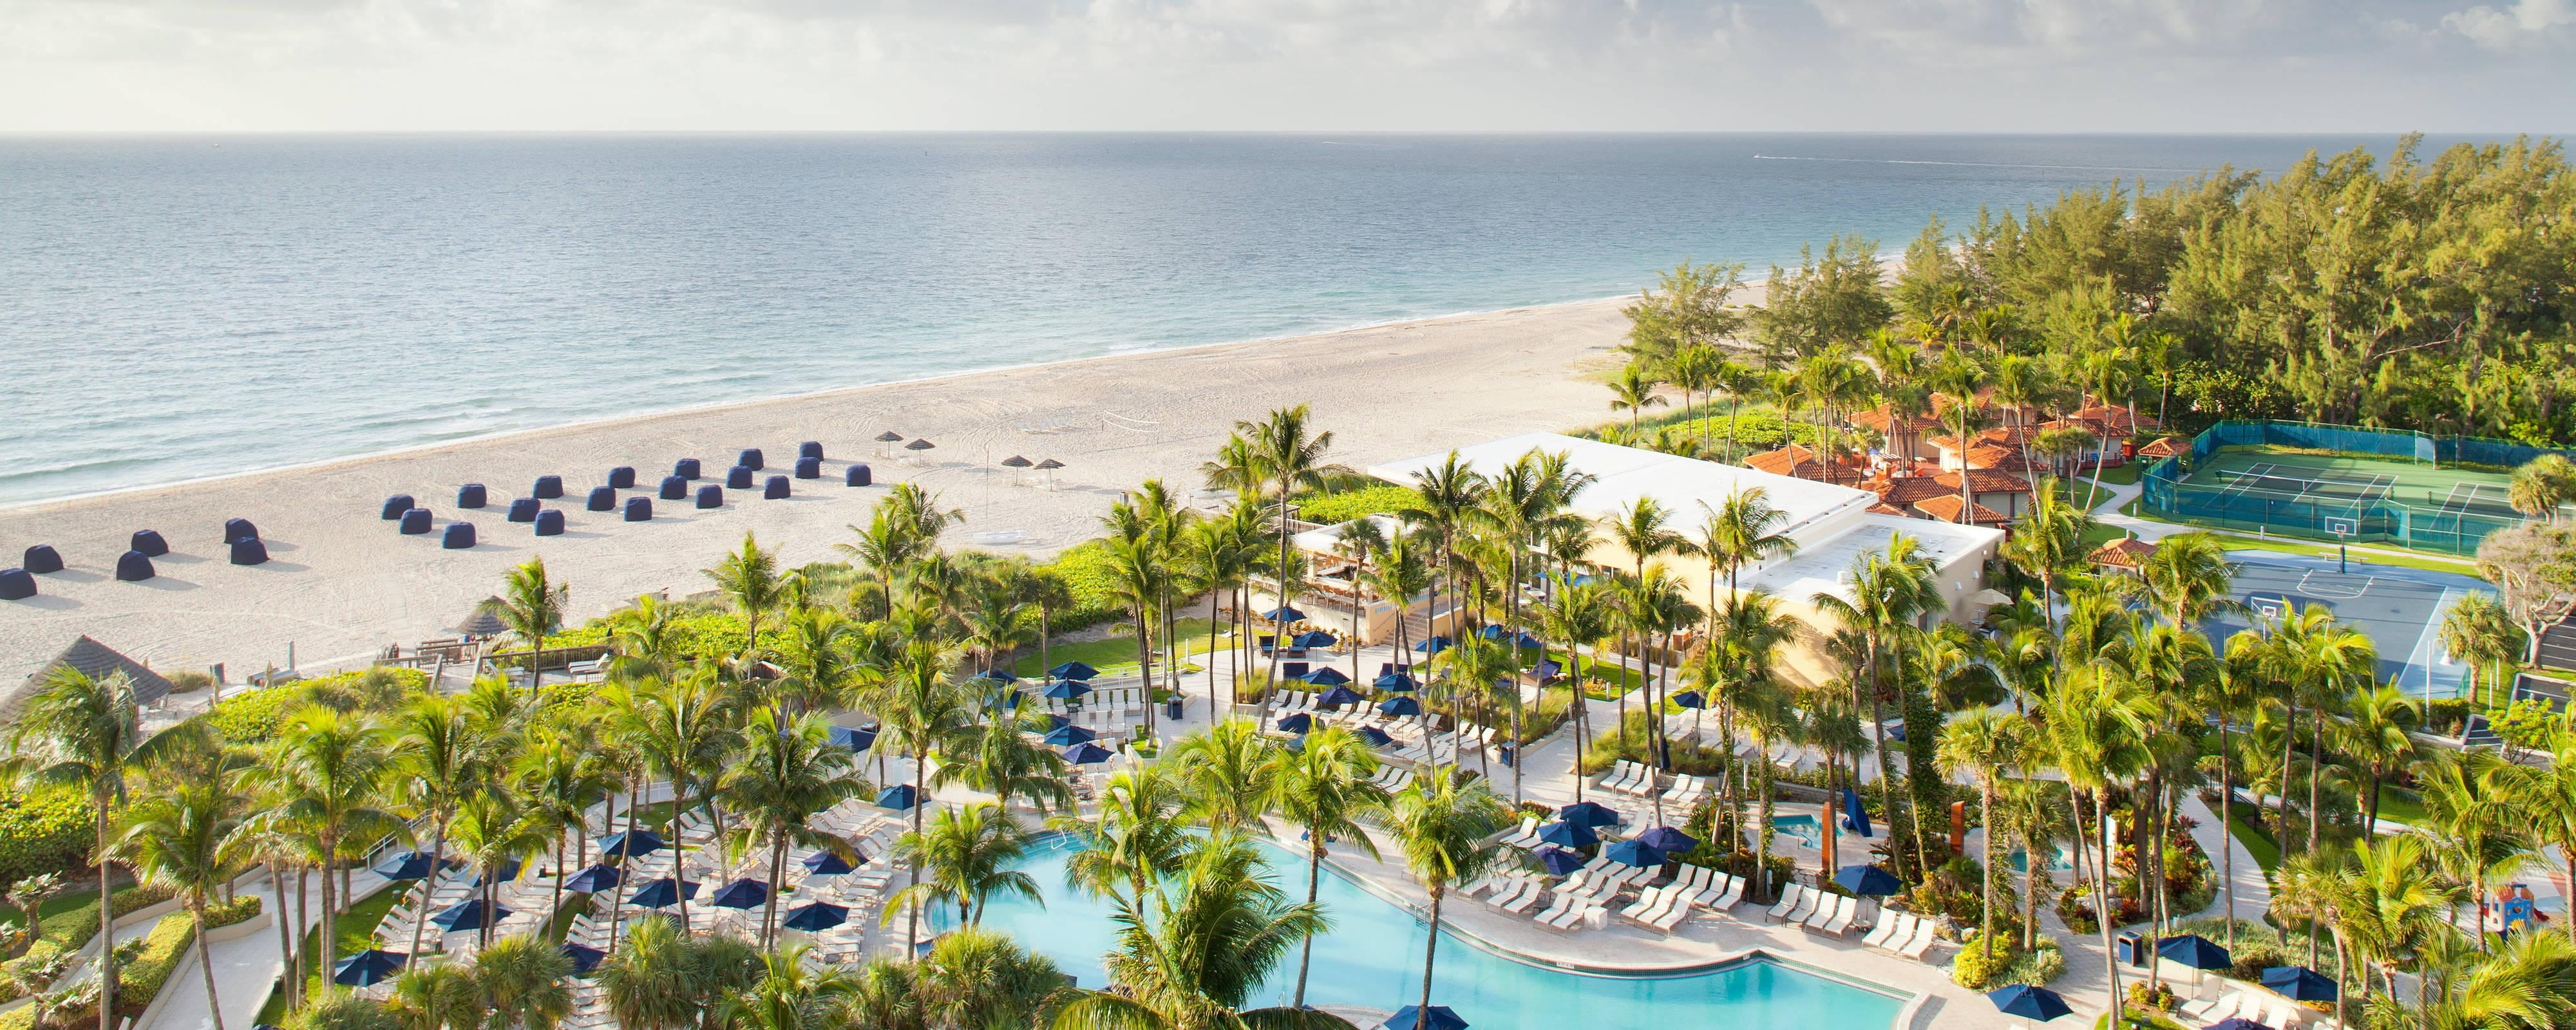 Fort Lauderdale Beach Hotel